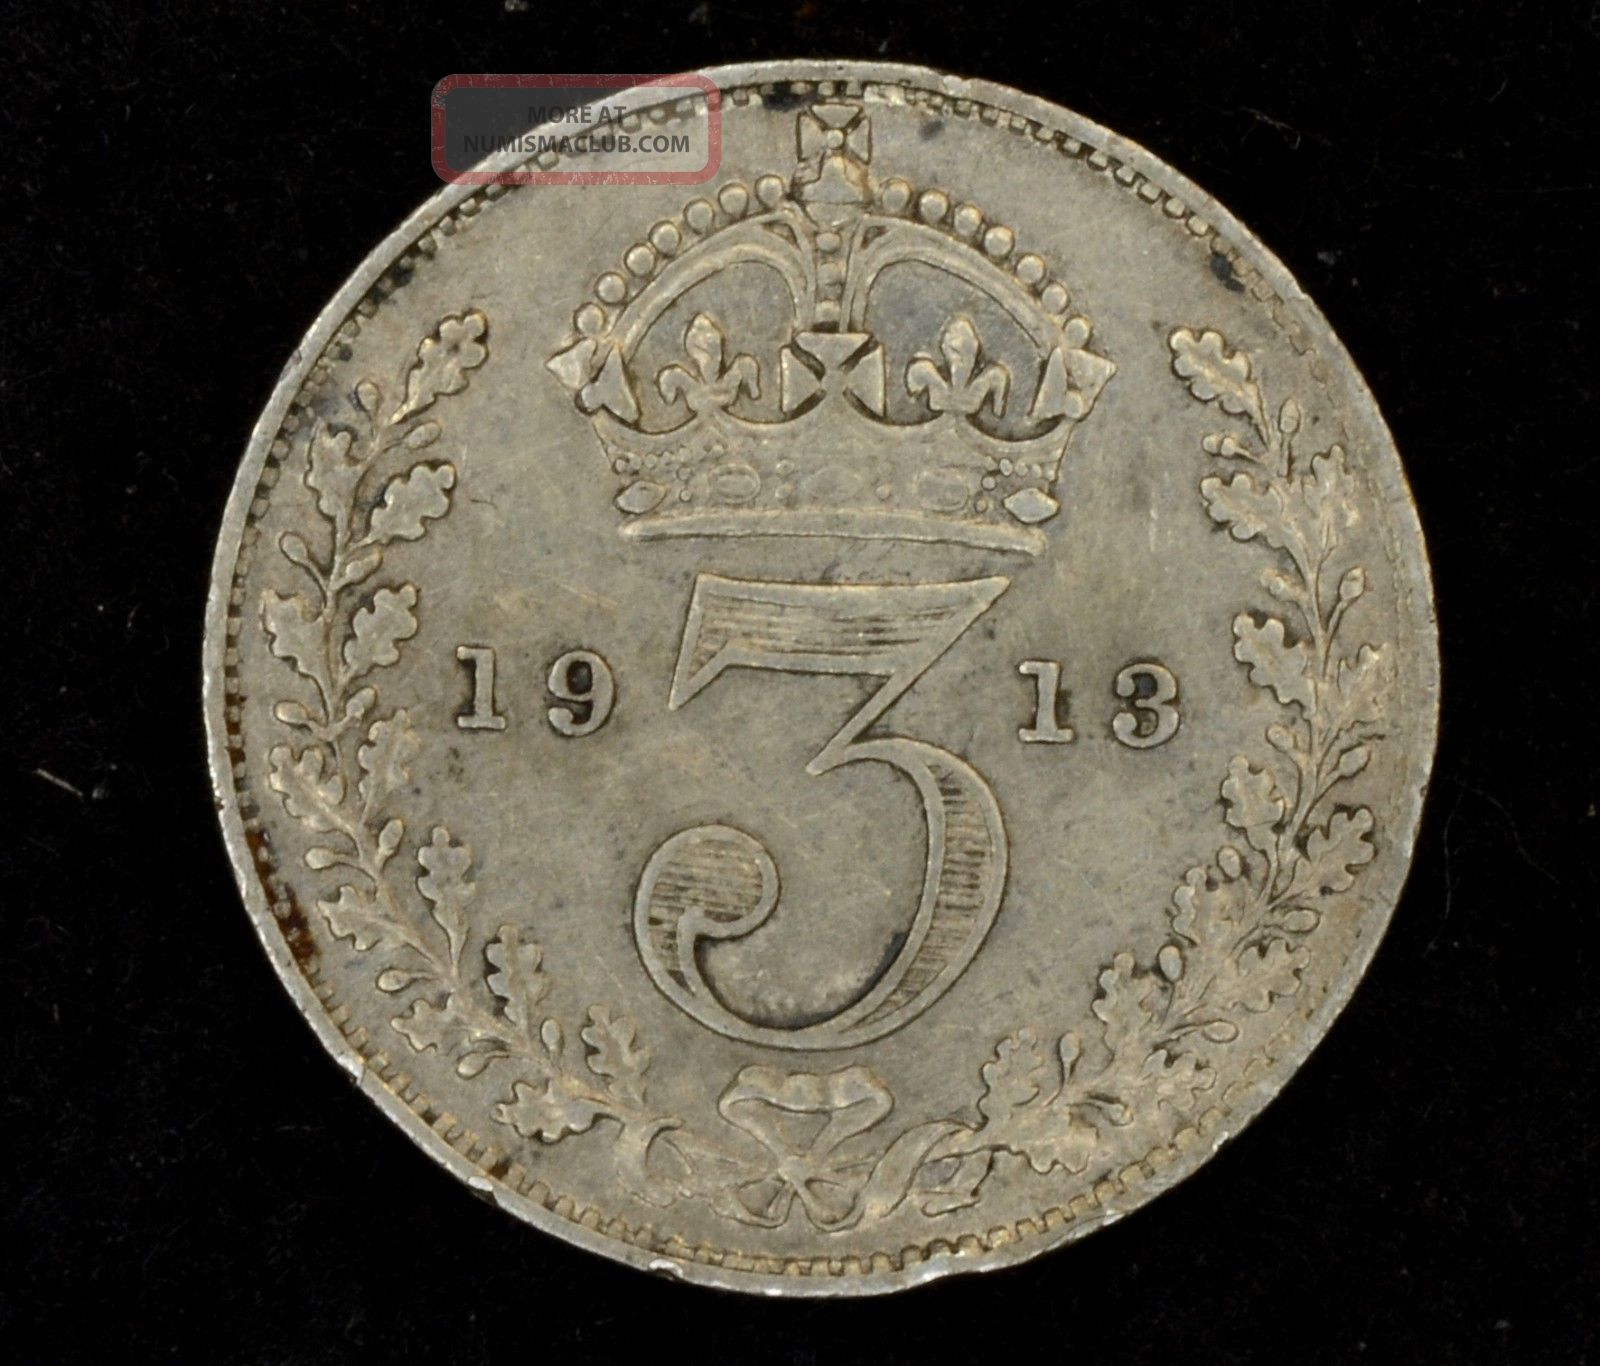 1913 Great Britain Threepence Unc Km 813.  925 Fine Silver 349 UK (Great Britain) photo